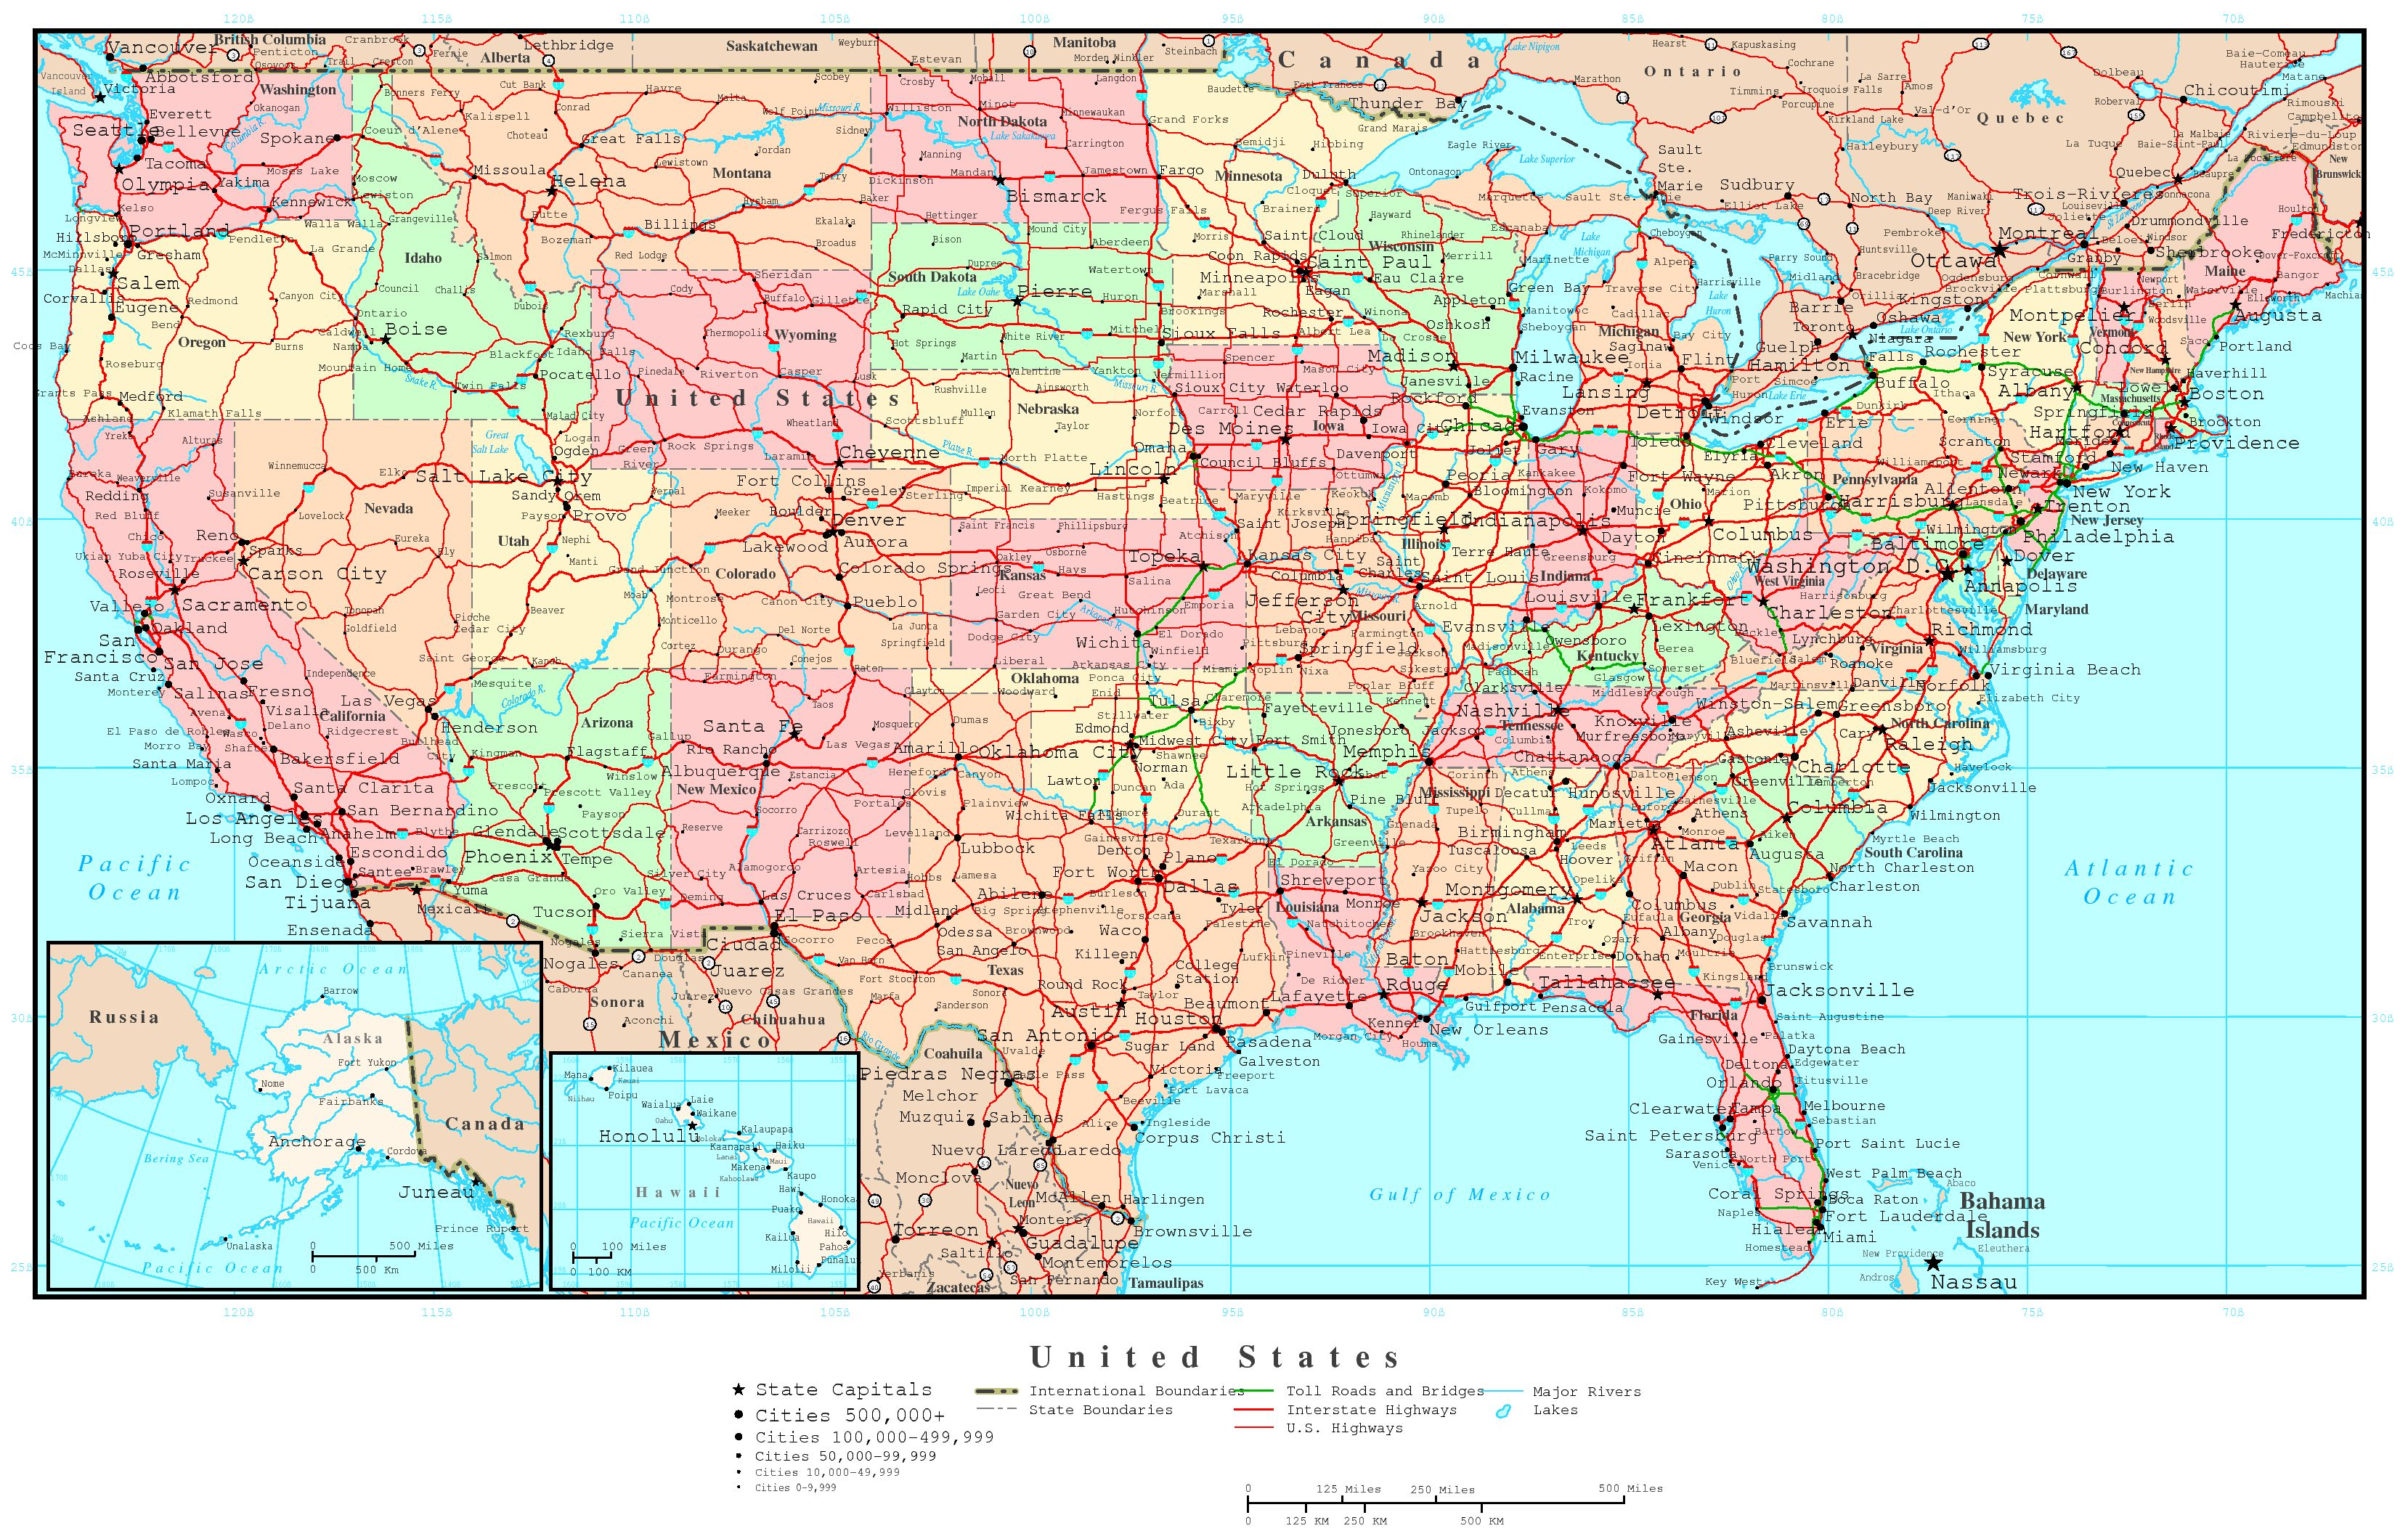 USA Map Road Map Of Usa And Canada Road Map Of Usa And Canada - Map of the usa states